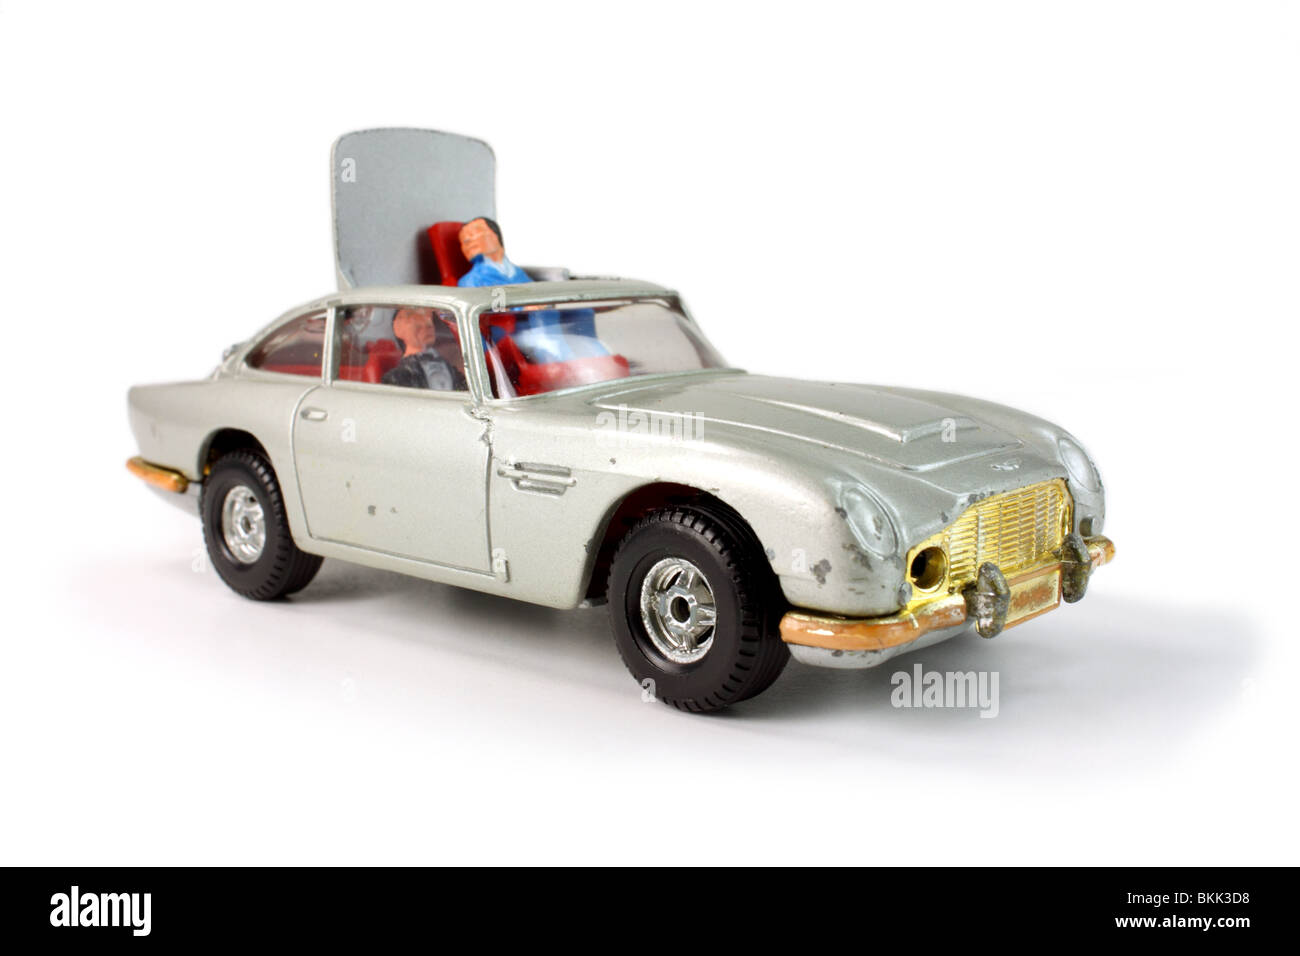 original corgi die-cast toy of james bond's aston martin db5 stock